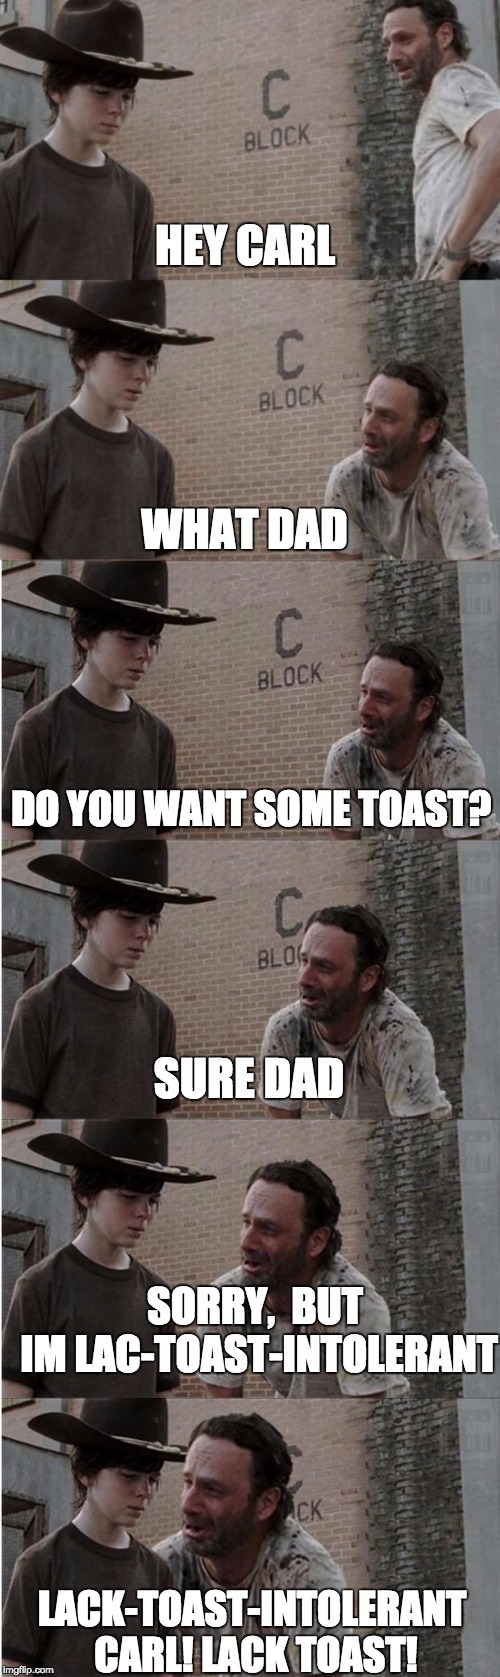 Lactose Intolerant | HEY CARL LACK-TOAST-INTOLERANT CARL! LACK TOAST! WHAT DAD DO YOU WANT SOME TOAST? SURE DAD SORRY,  BUT IM LAC-TOAST-INTOLERANT | image tagged in memes,rick and carl longer,carl,rick,lol,funny | made w/ Imgflip meme maker